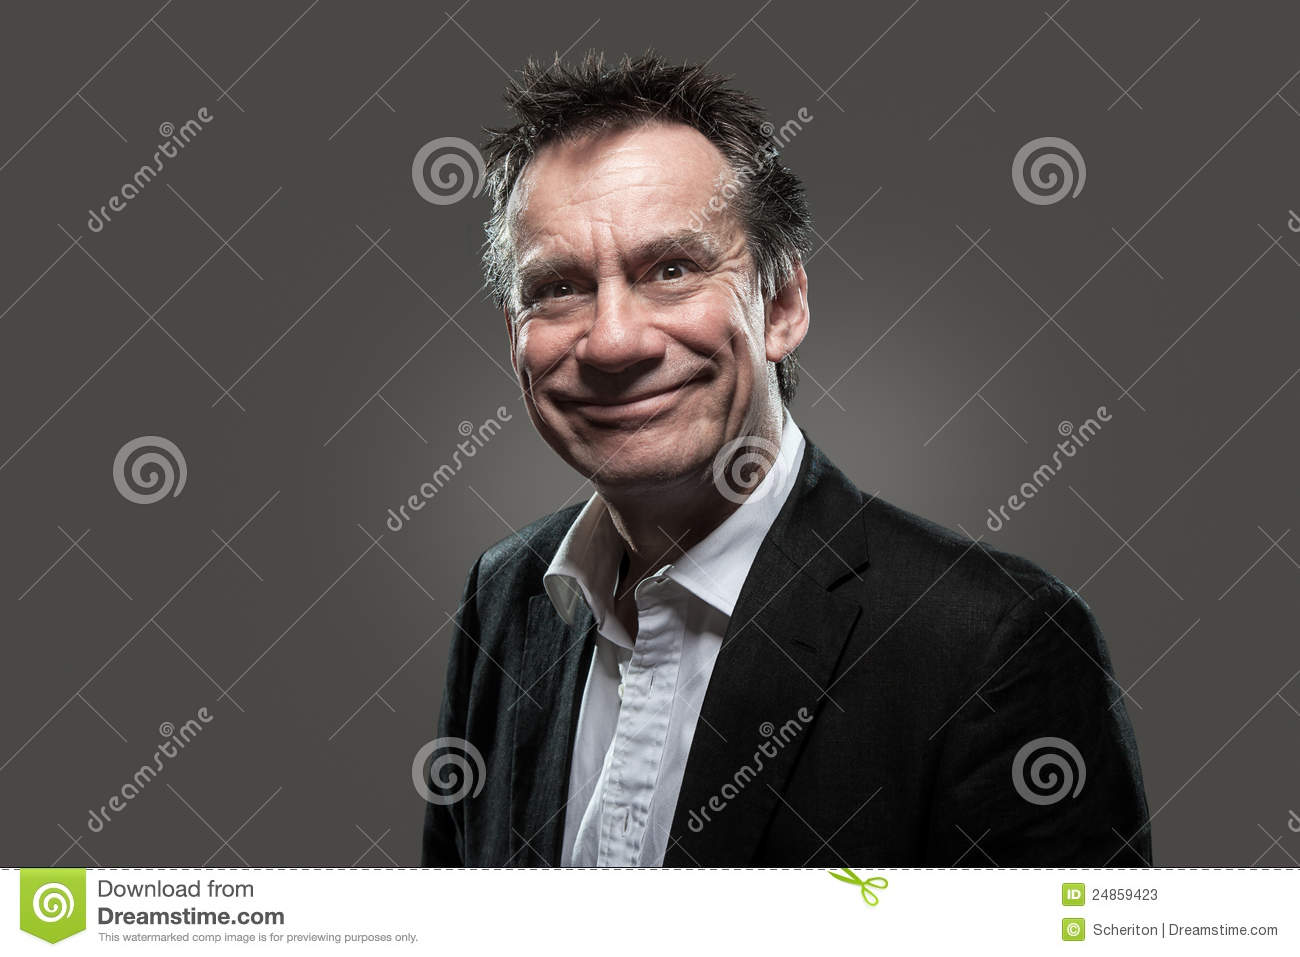 Business Man in Suit with Cheesy Grin High Contras